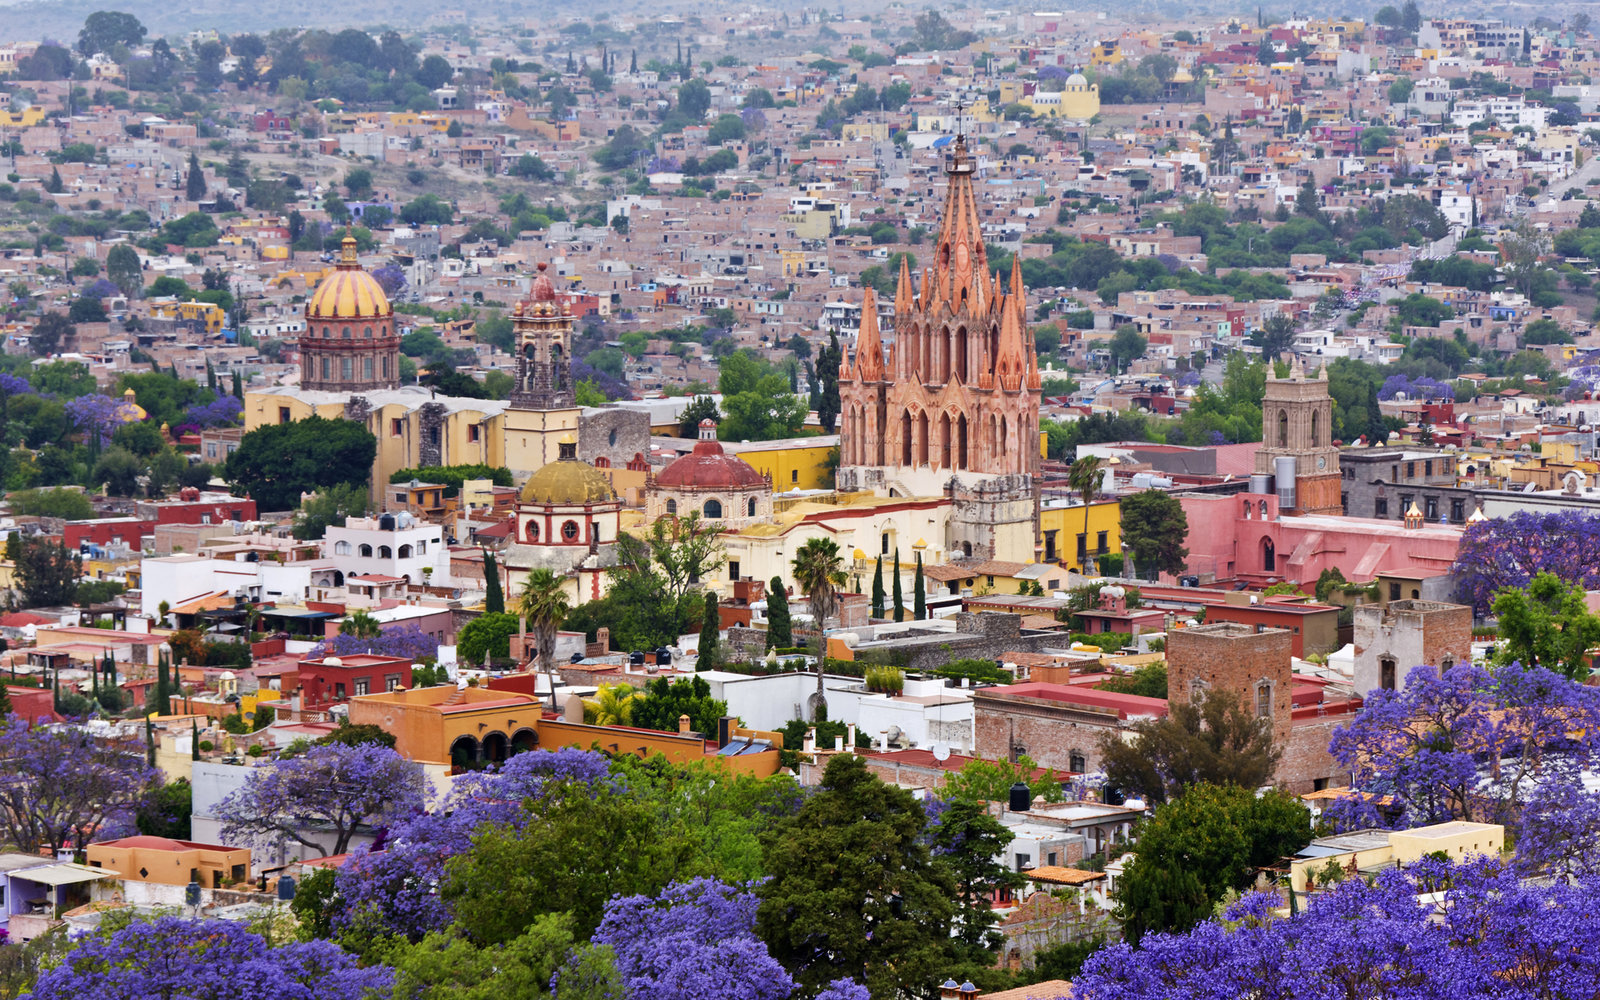 Worlds-Best-Cities-San-Miguel-de-Allende-WBCITY0516